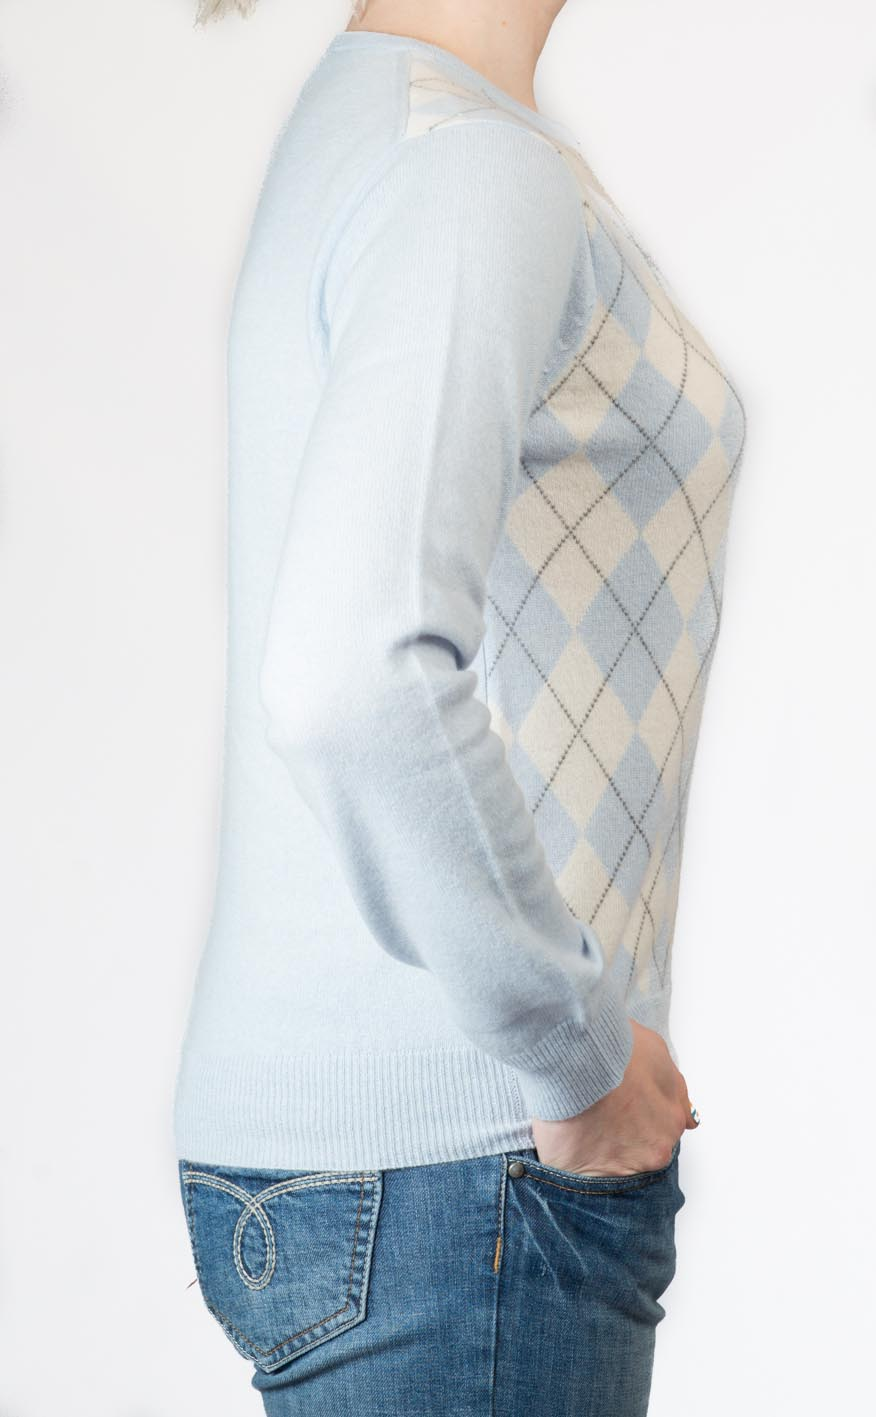 Ladies Cashmere Argyle Crew Neck Sweater by Scotweb